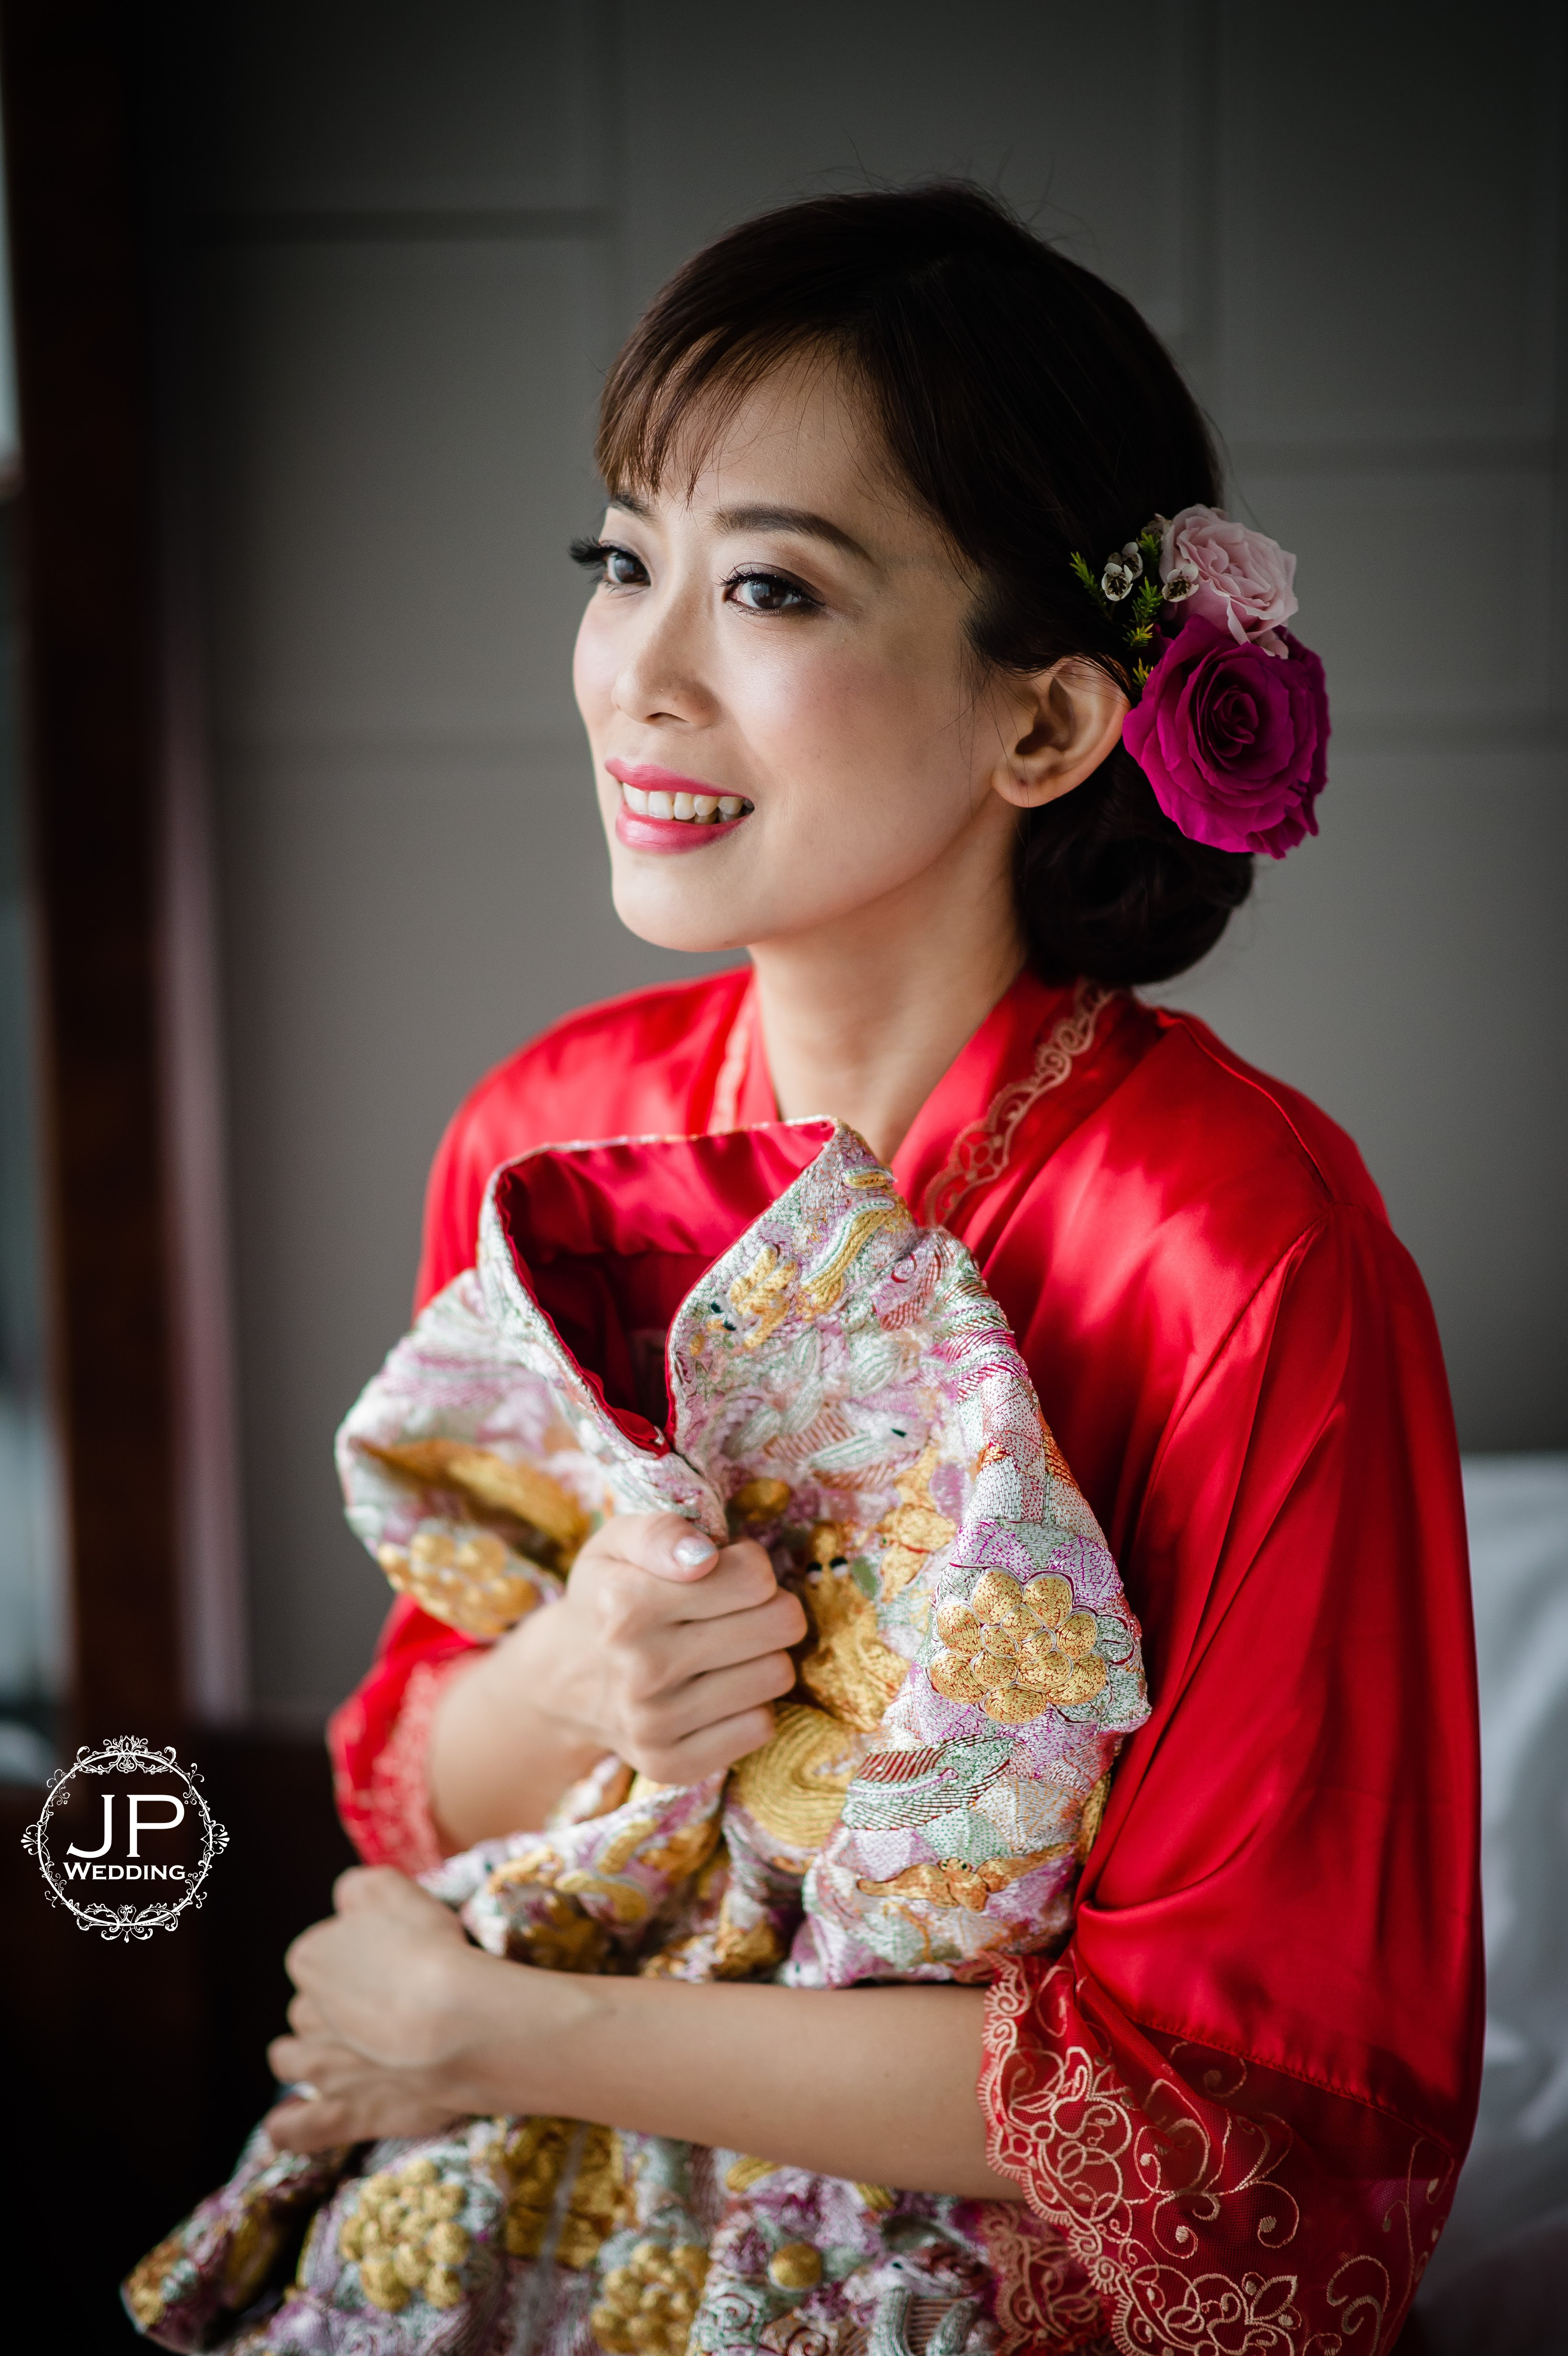 JP Wedding Chinese Style Makeup